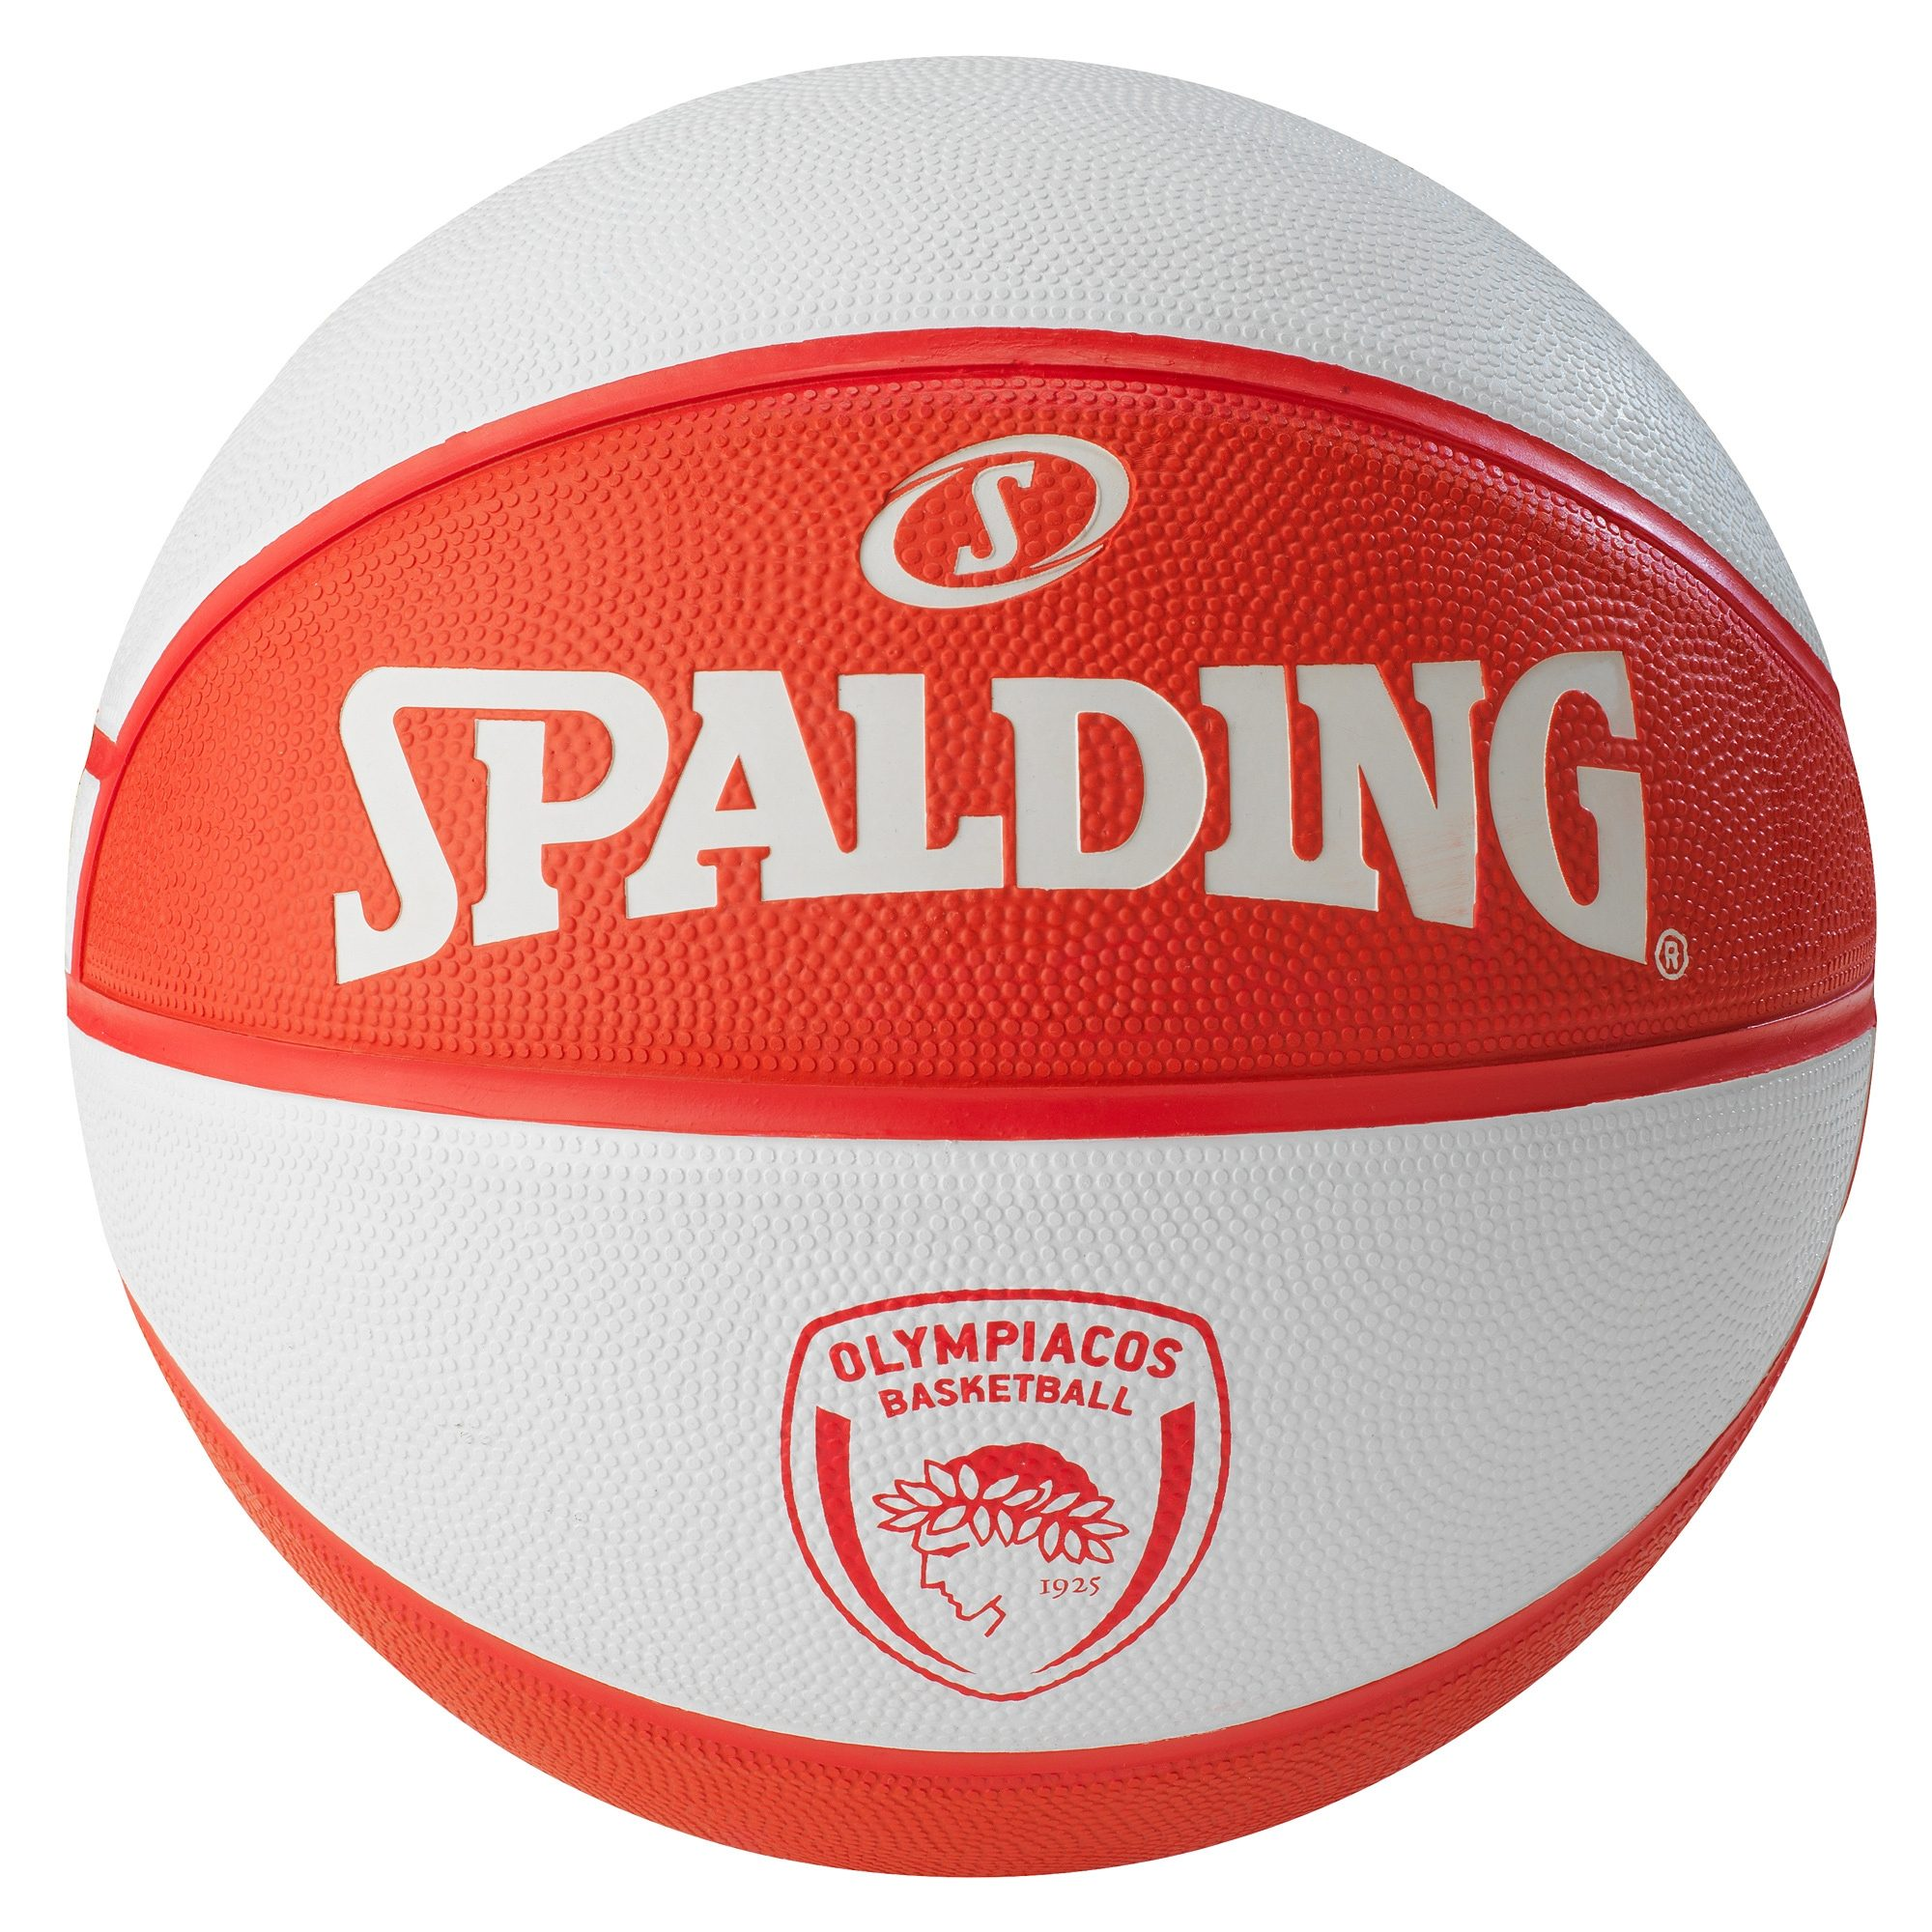 SPALDING ELTeam Olympiacos Basketball